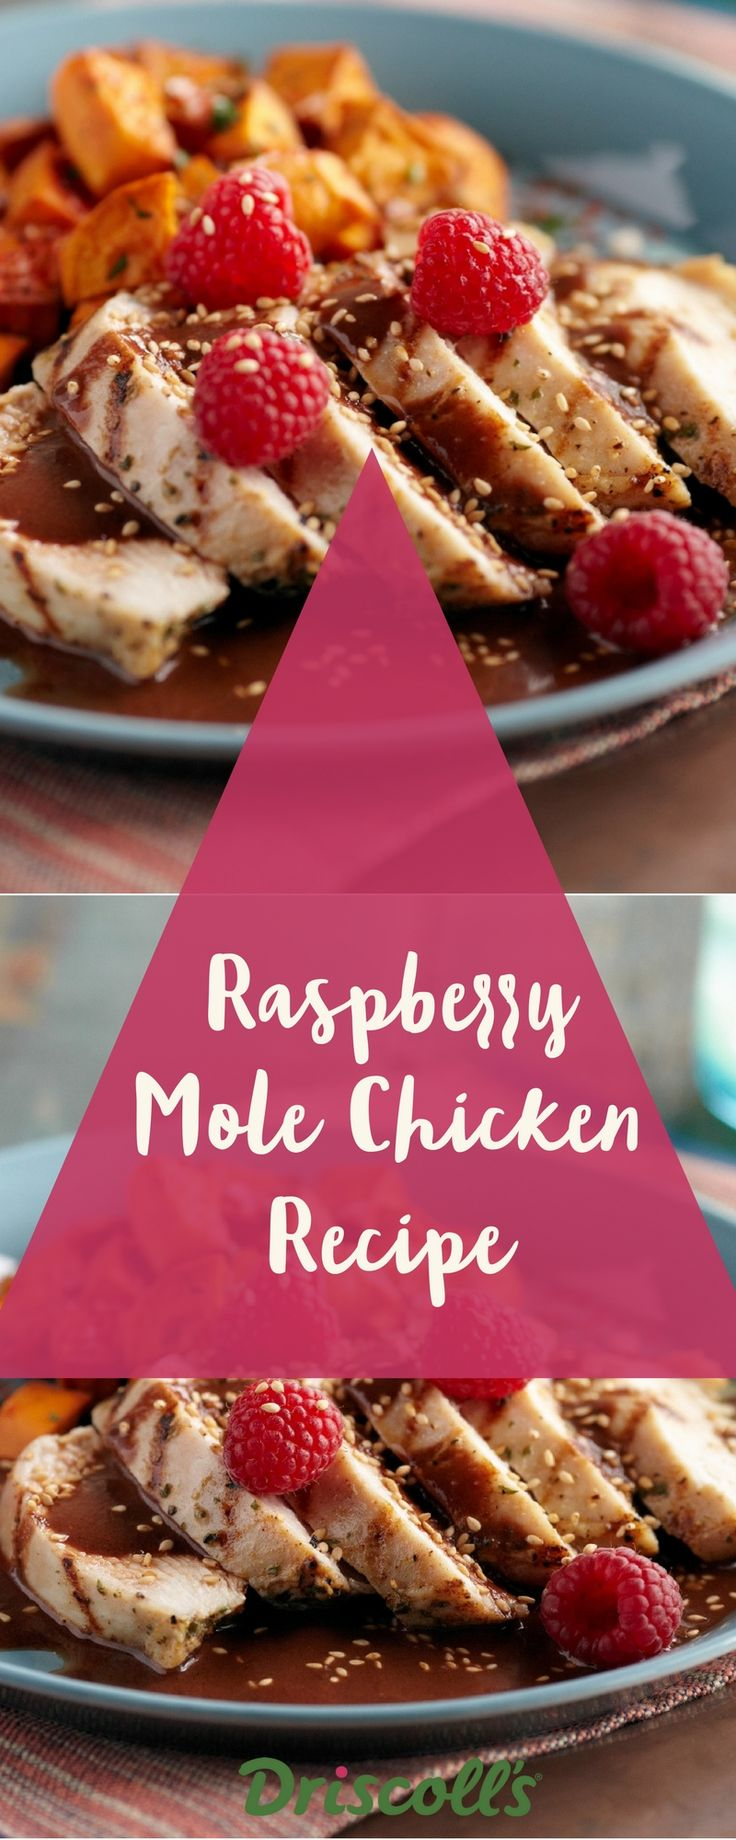 Mole is a Mexican sauce traditionally made with chili peppers. Our raspberry mole recipe is enriched with three types of chilis, chocolate, walnuts and cloves. Serve over grilled chicken or pork.